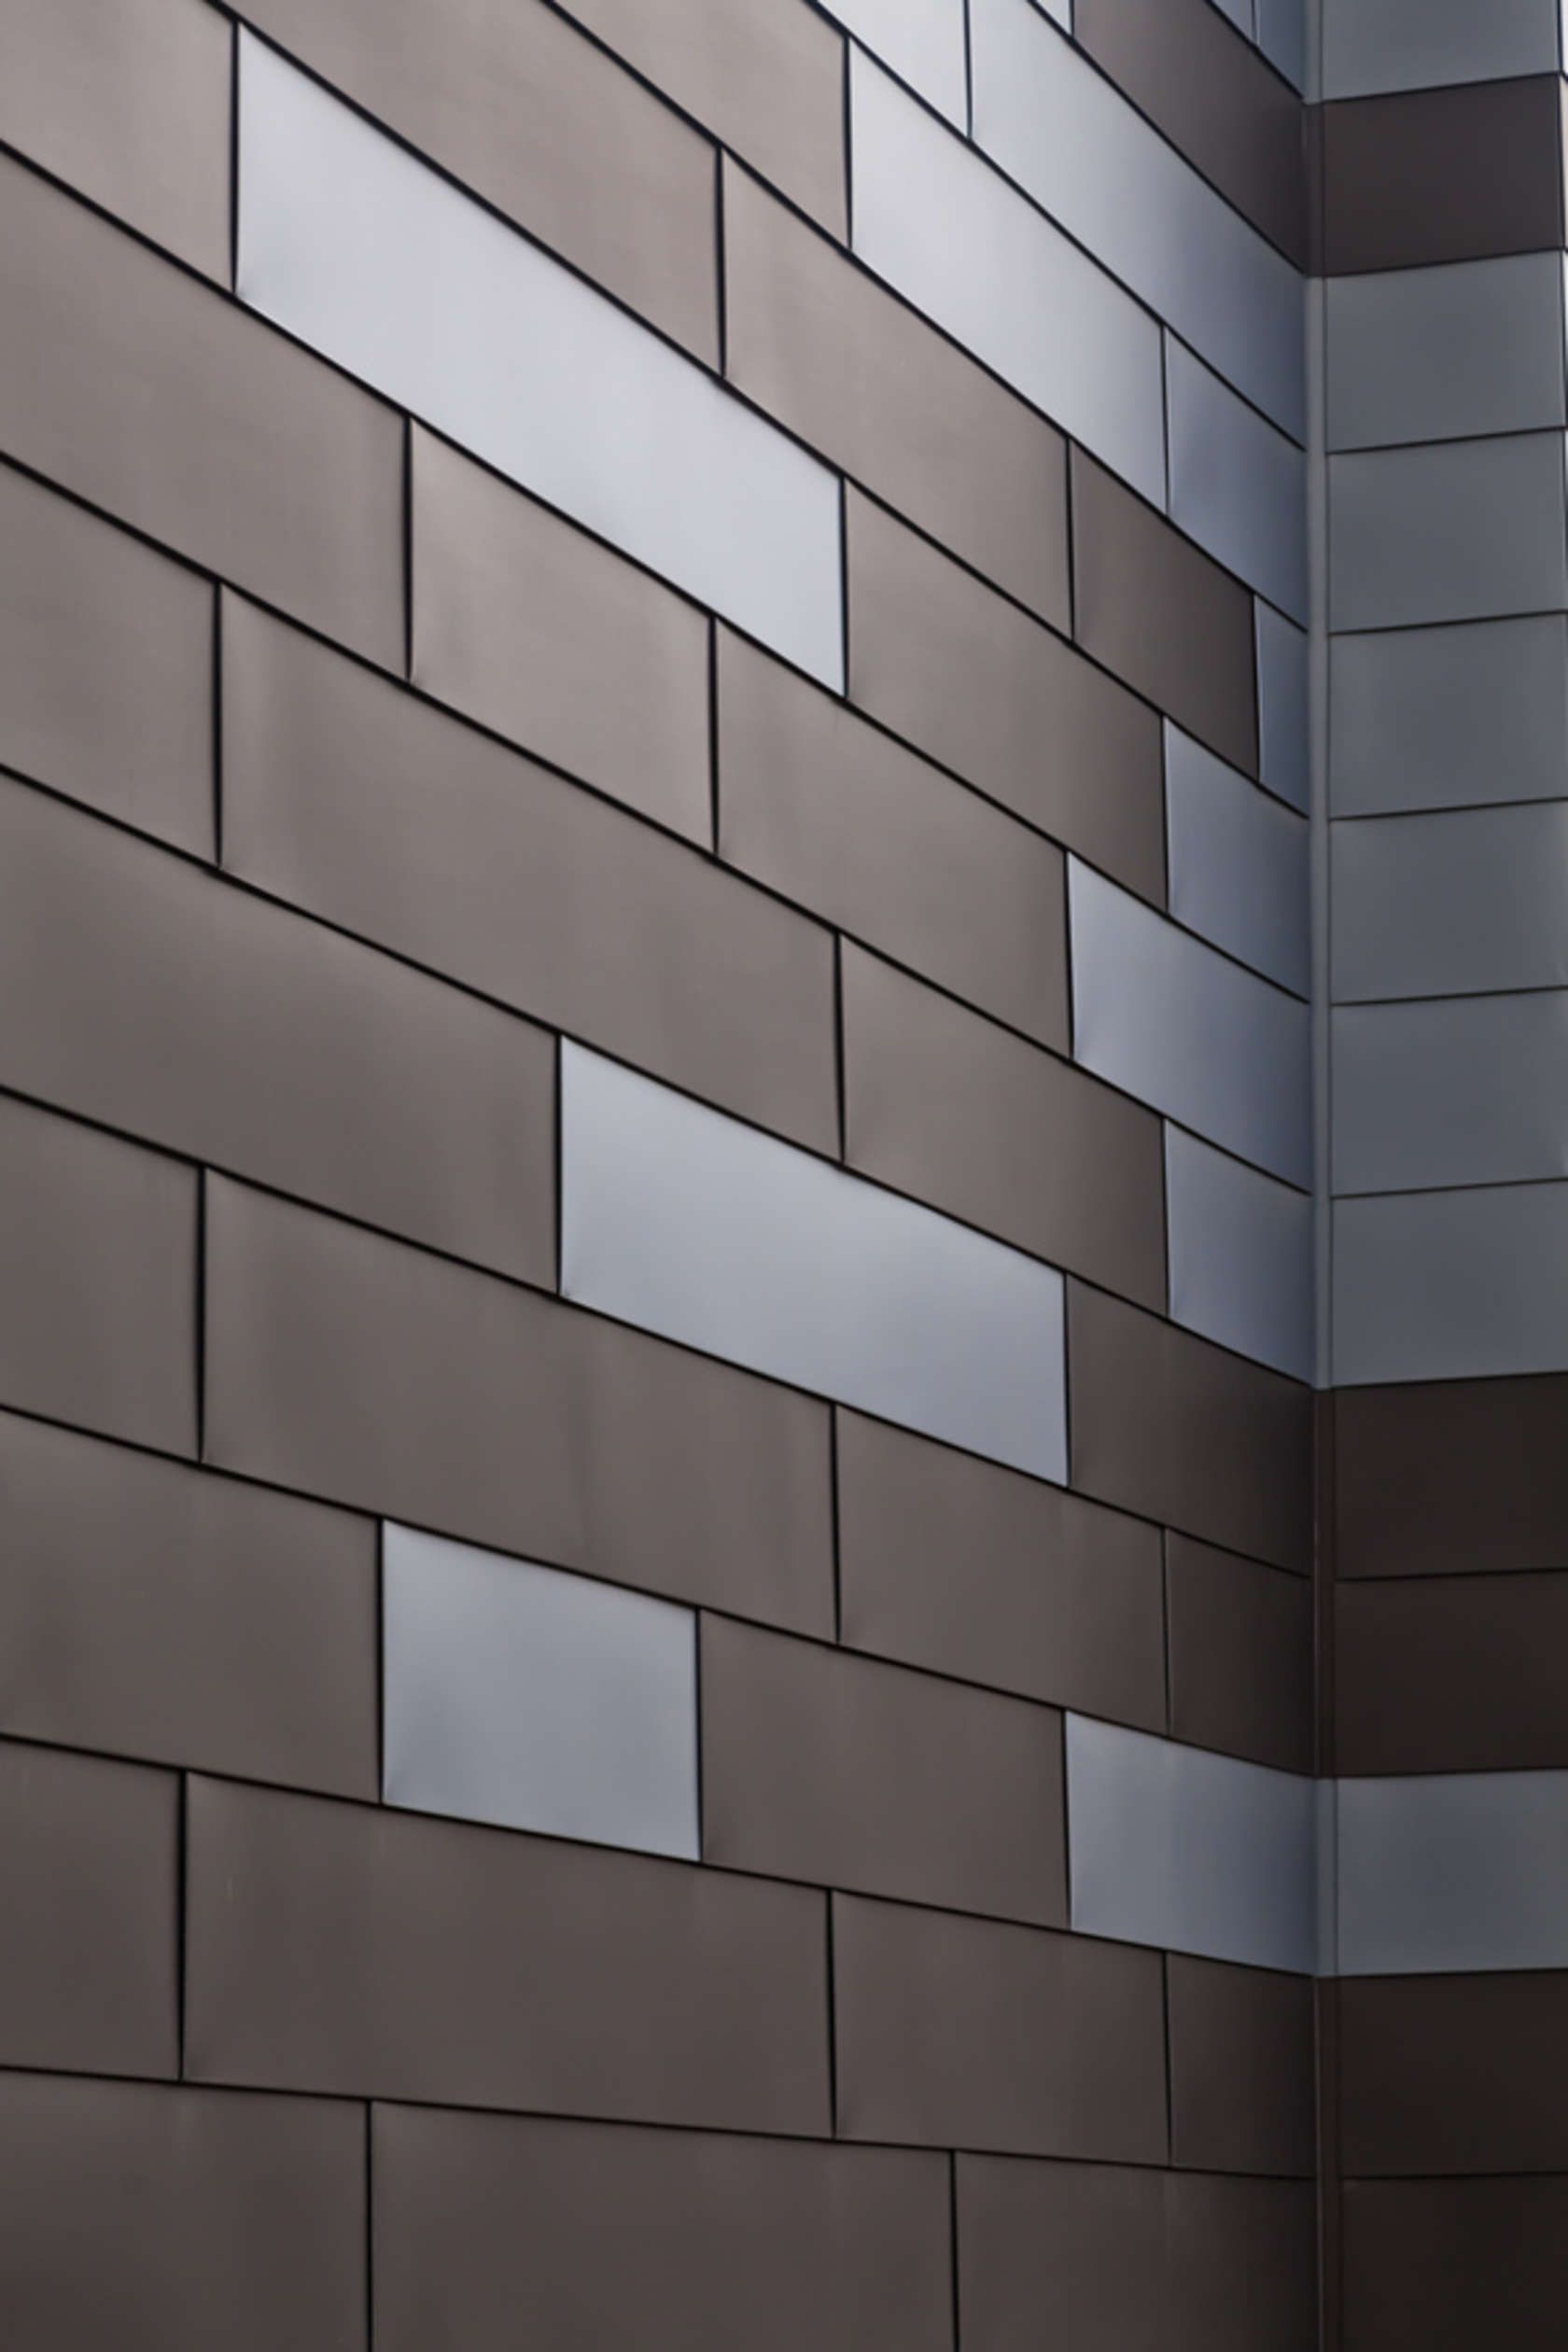 Exterior Cladding Systems: Architecture Materials